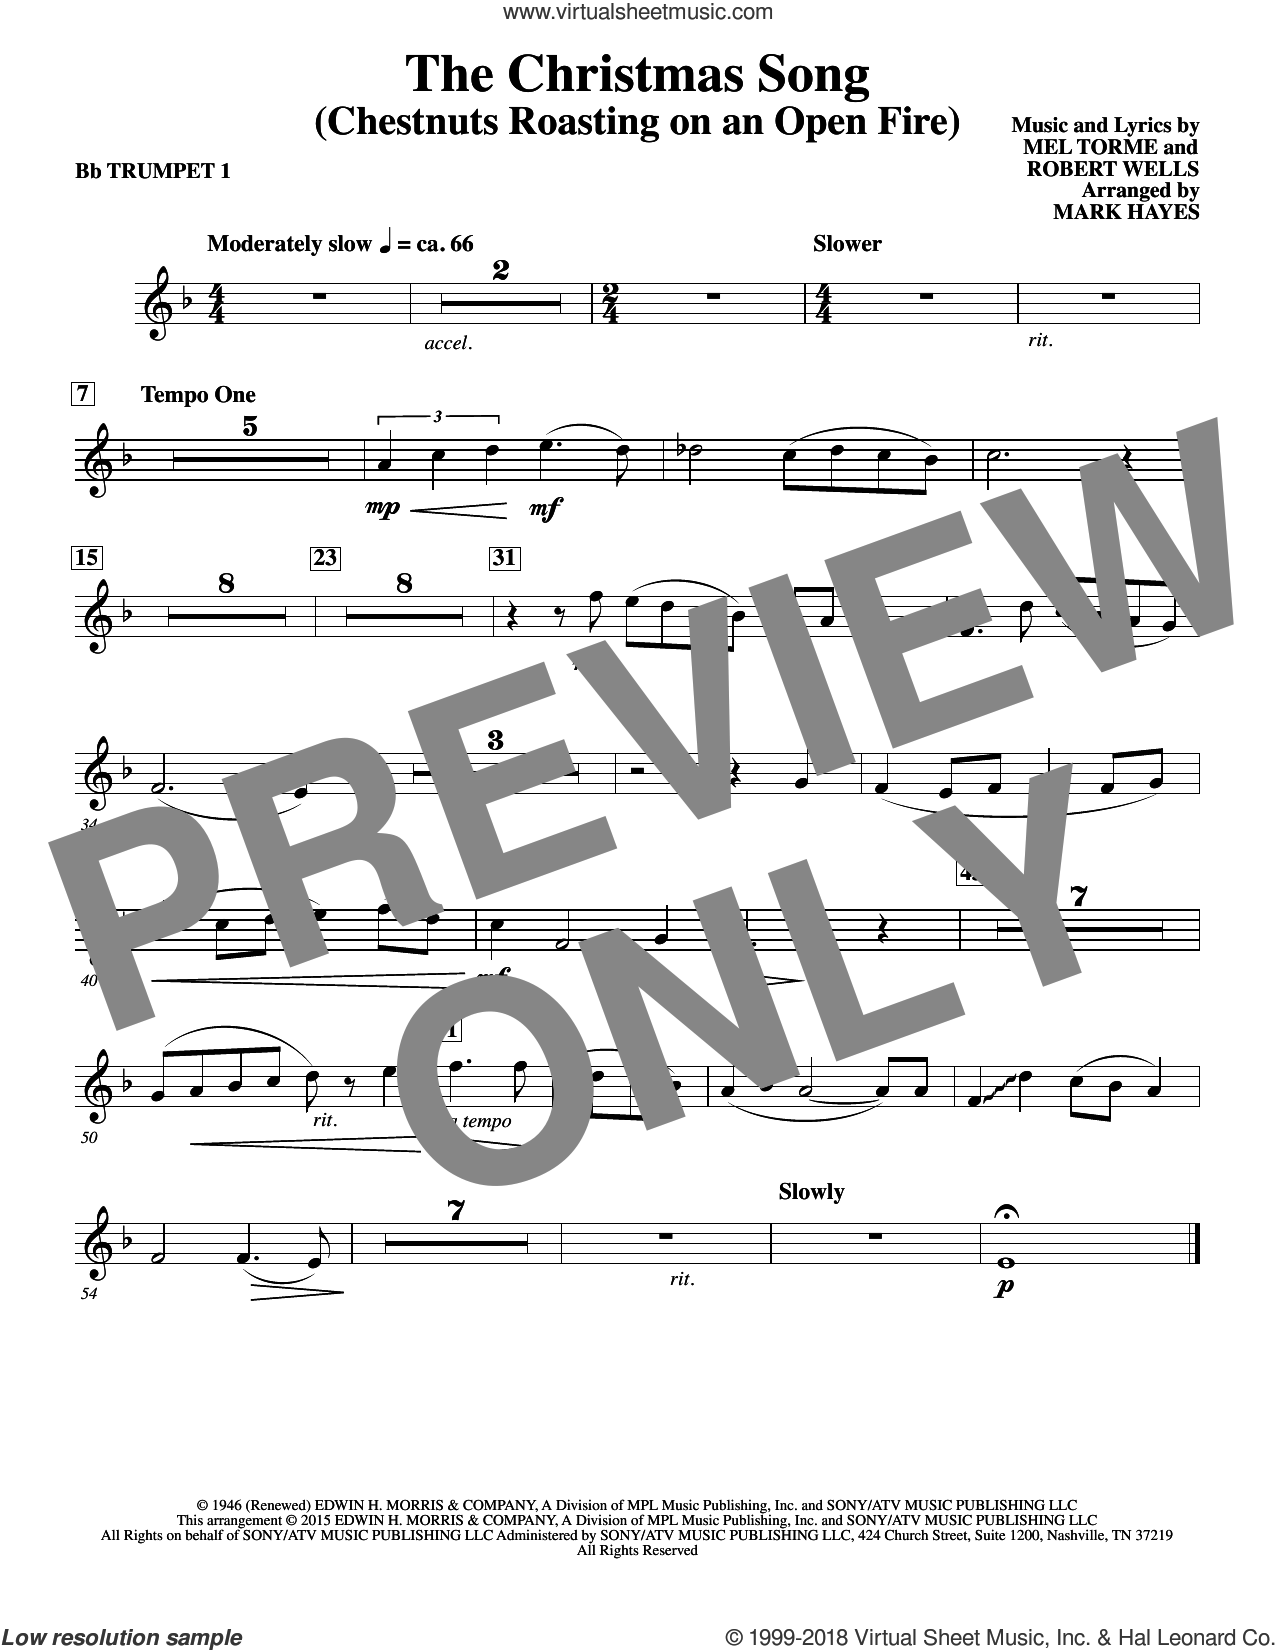 The Christmas Song (Chestnuts Roasting On An Open Fire) sheet music for orchestra/band (Bb trumpet 1) by Mel Torme, Mark Hayes, Clay Crosse, King Cole Trio, Nat Cole with N. Riddle Orch., Mel Torme and Robert Wells, intermediate skill level